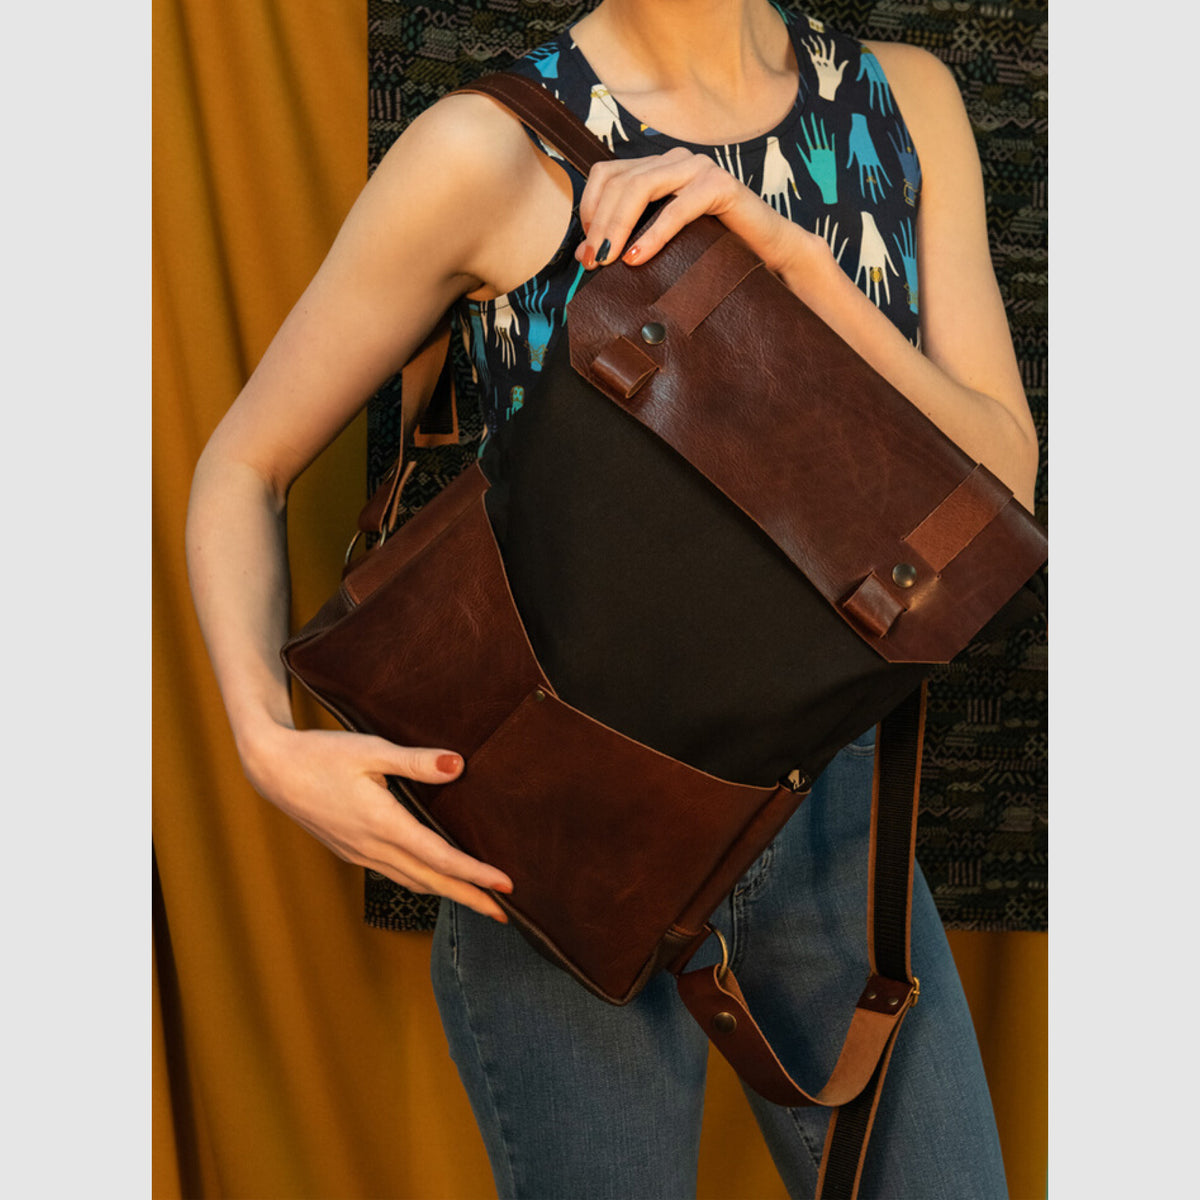 Model Wearing a Andes - Handmade 15 Inch Laptop Backpack - Leather & Waxed Cotton - Sold by Chic & Basta